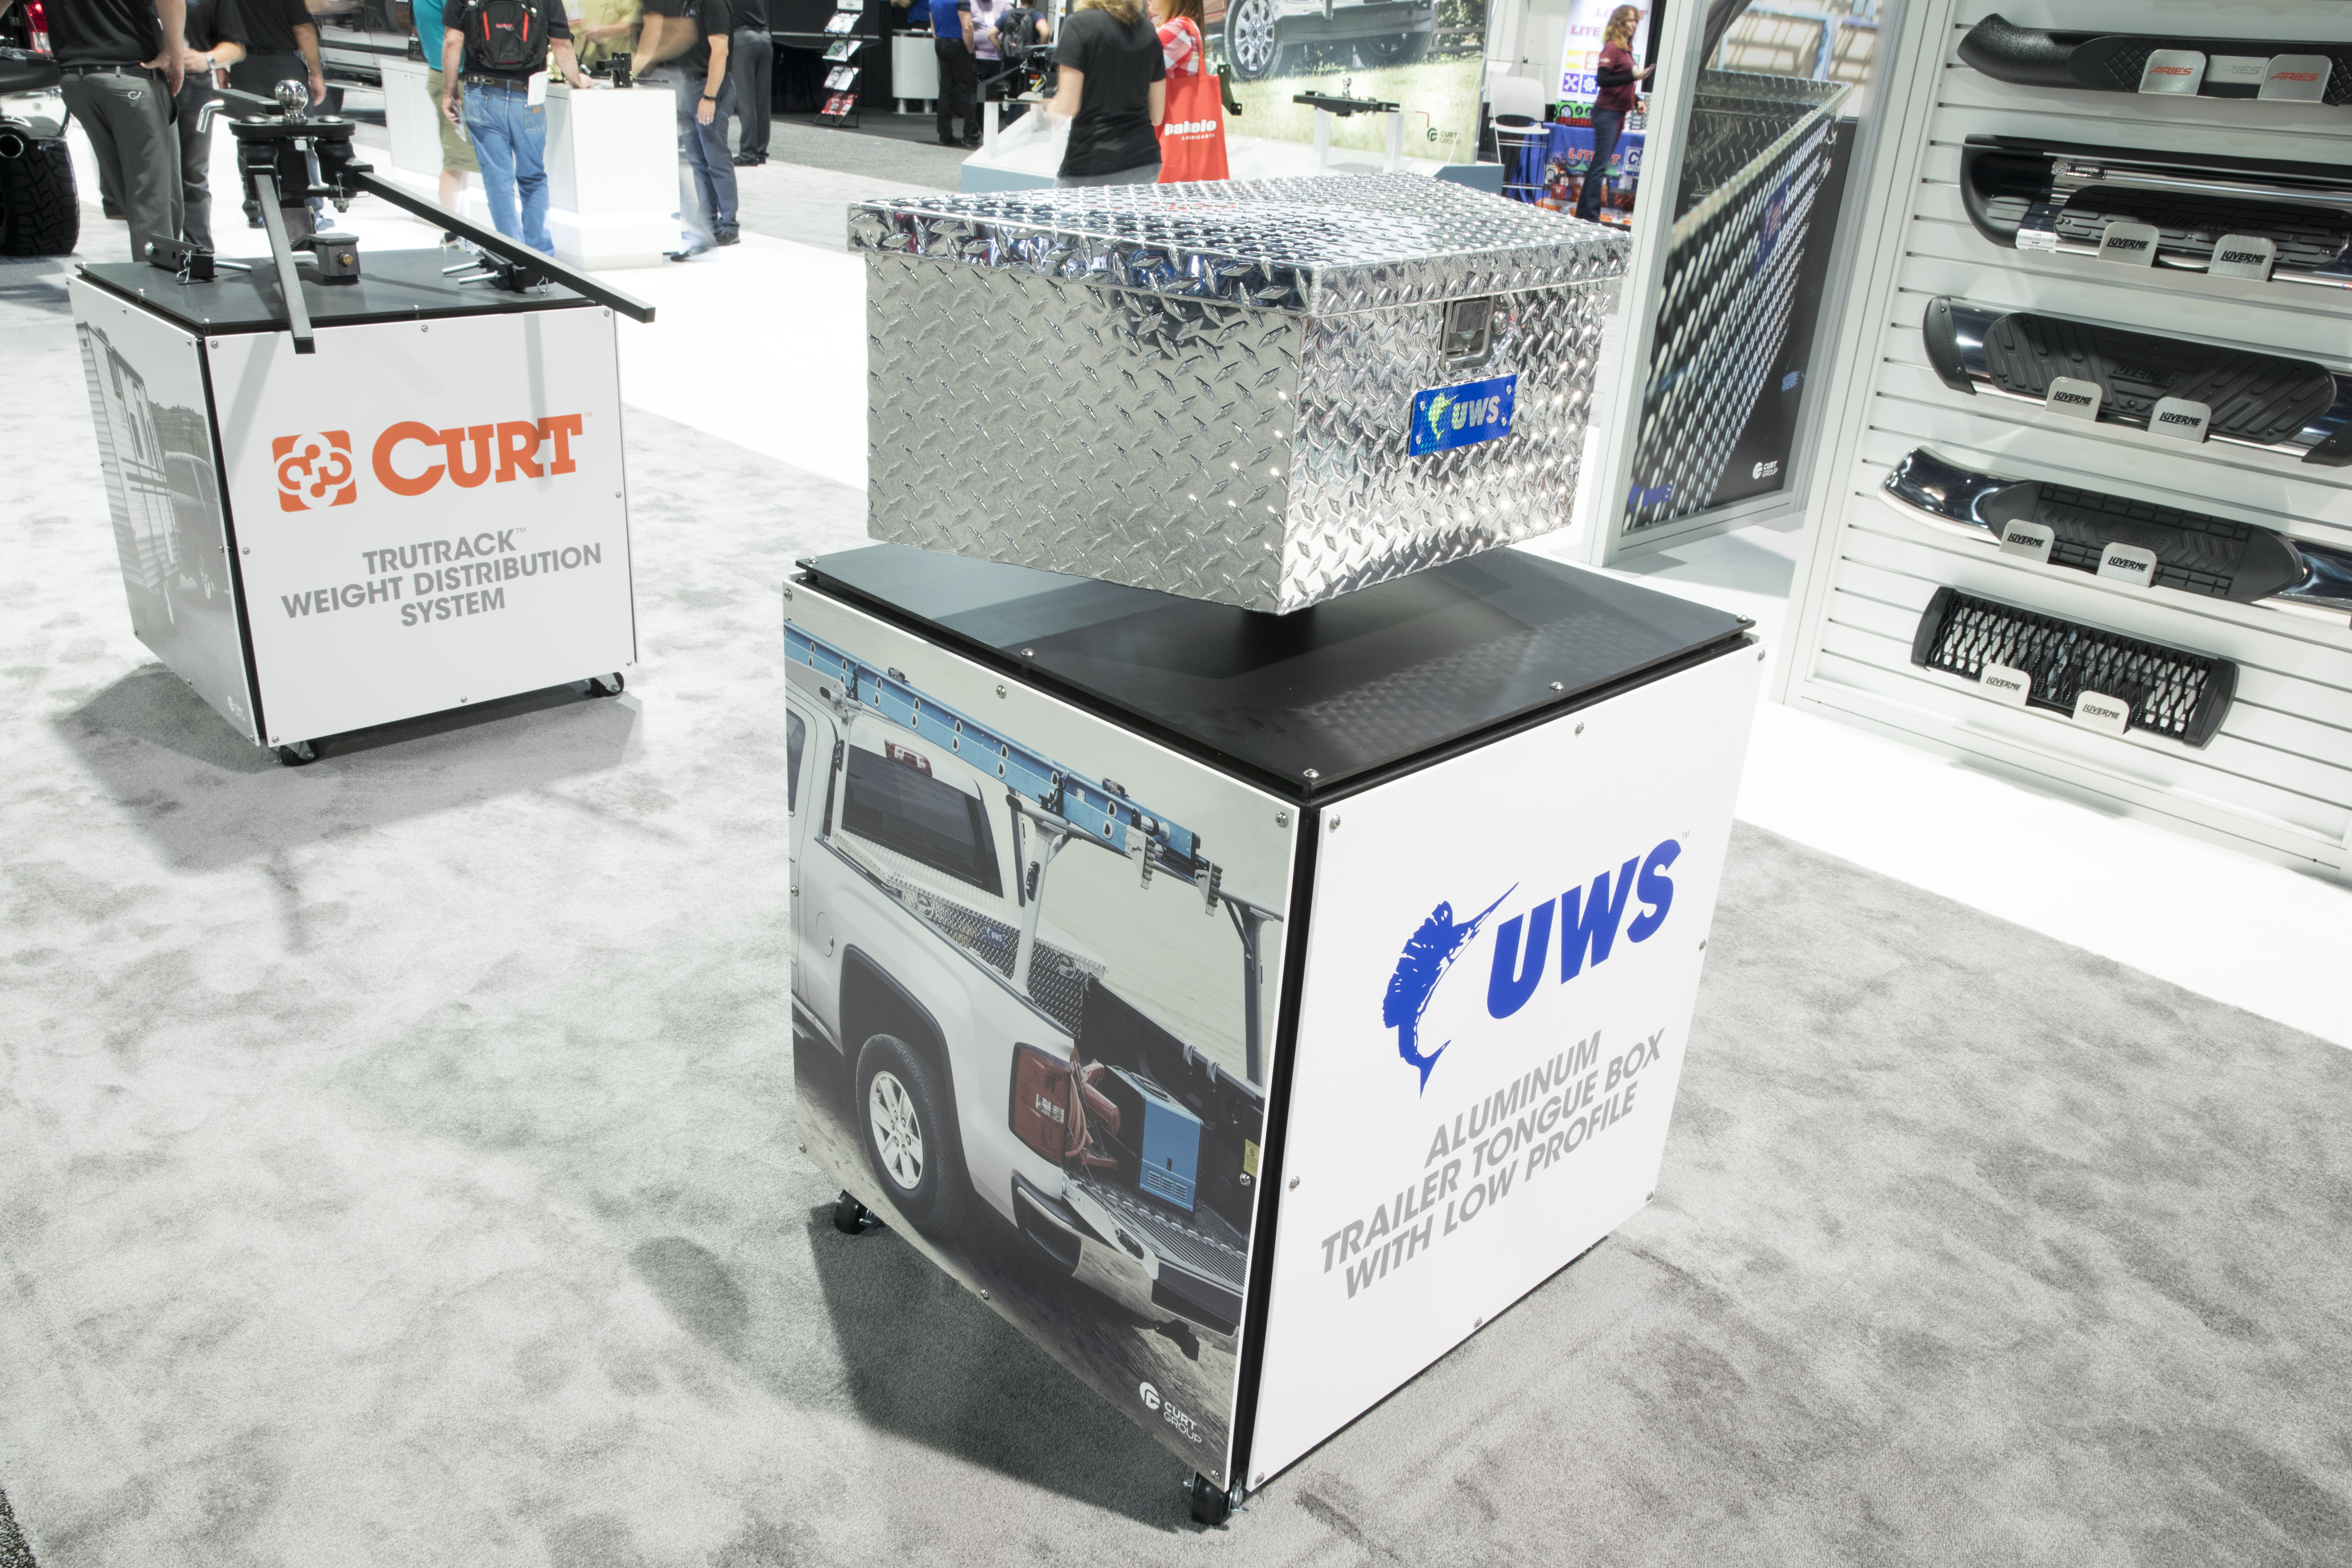 SEMA 2017 UWS TRAILER BOX